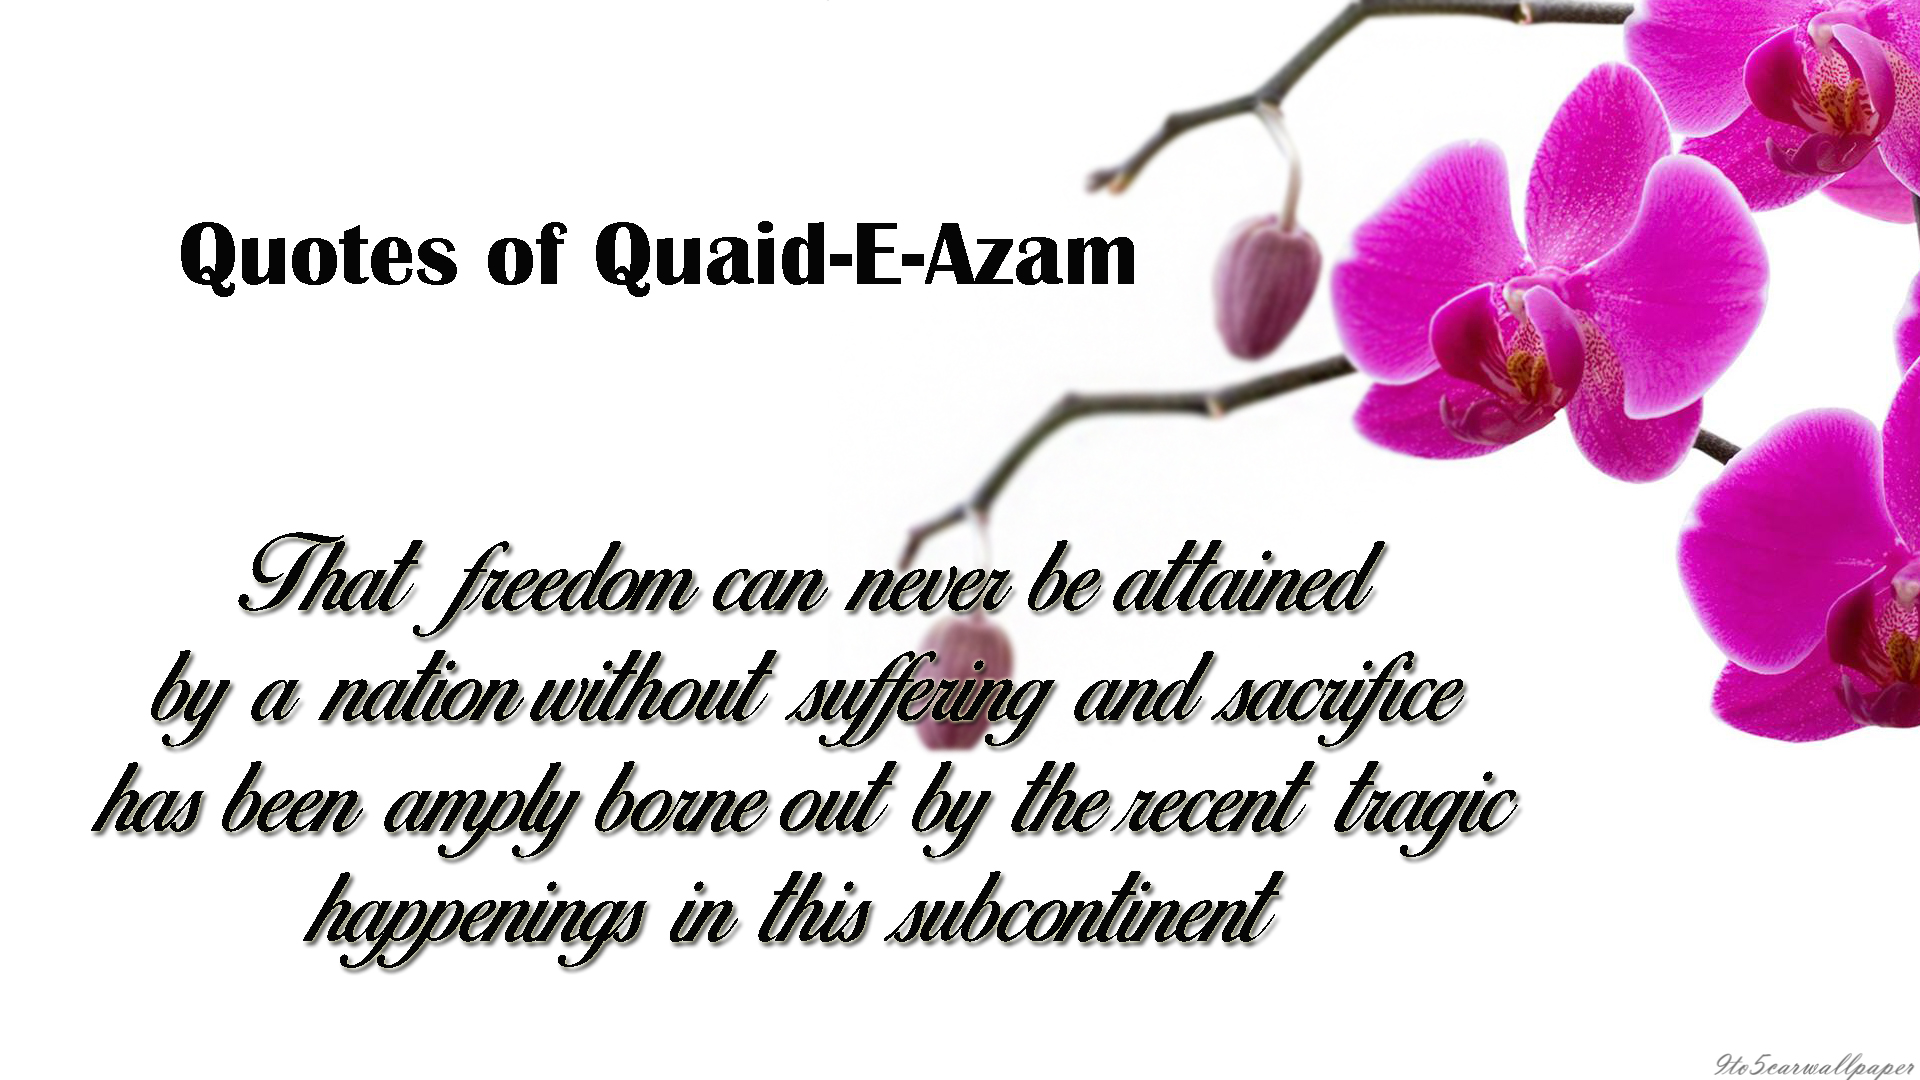 sayings-of-quaid-e-Azam-images-quotes-wallpapers-posters-cards